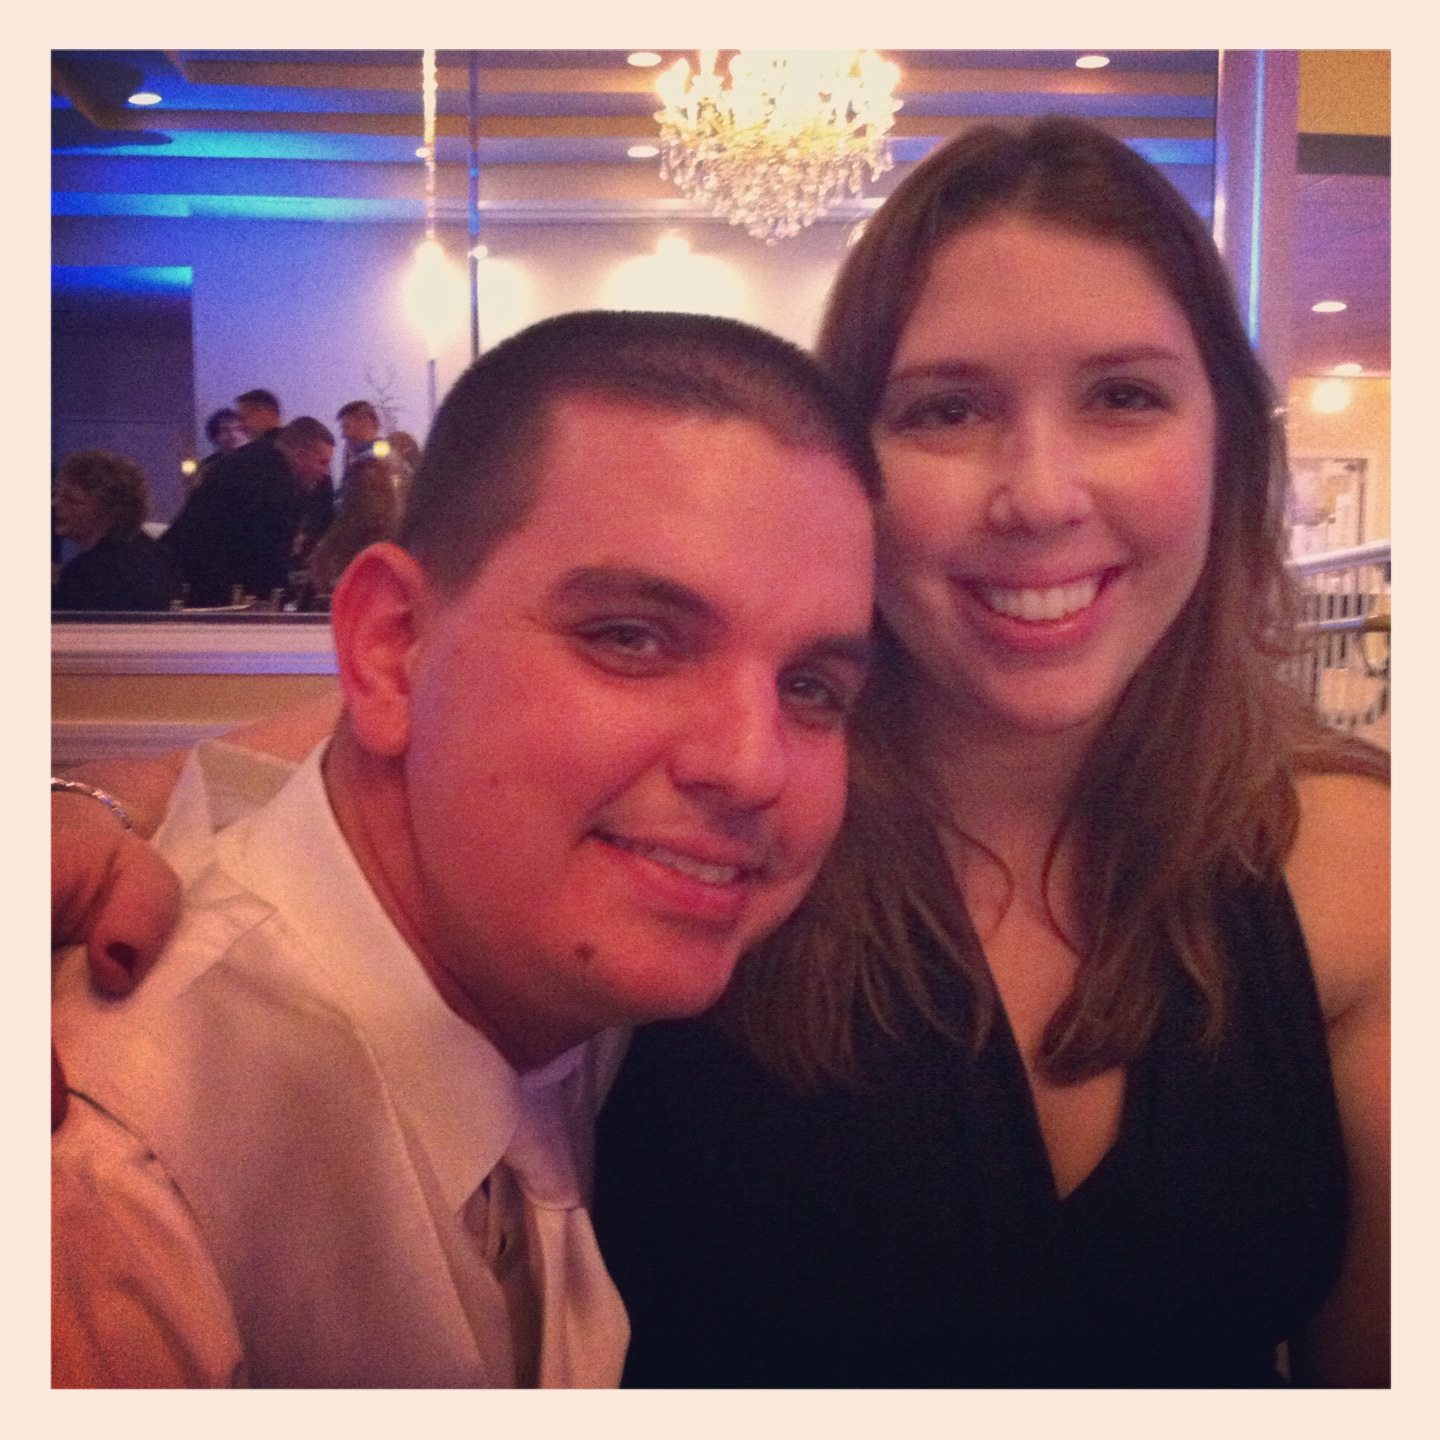 Favorite Picture of Me & My Husband - all snazzed up at our friend's wedding